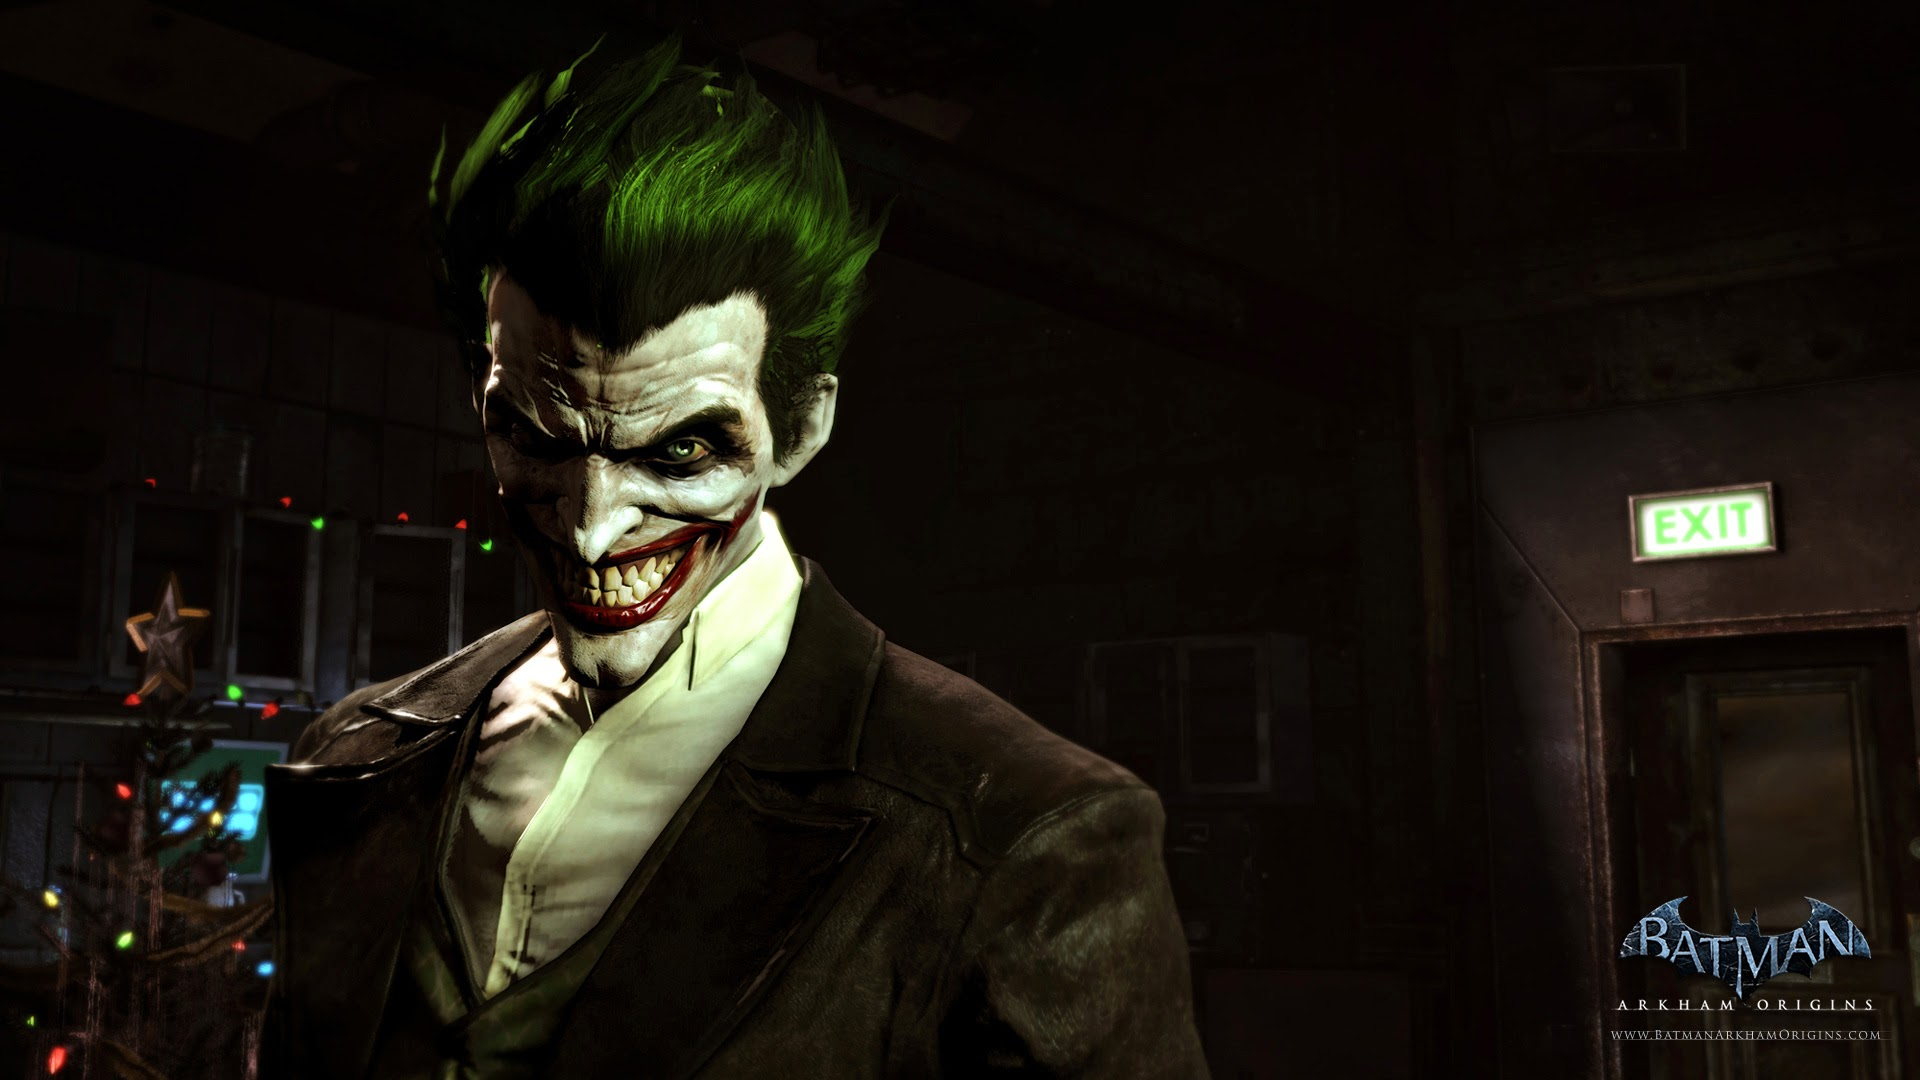 Joker Arkham Origins a355 HD Wallpaper 1920x1080